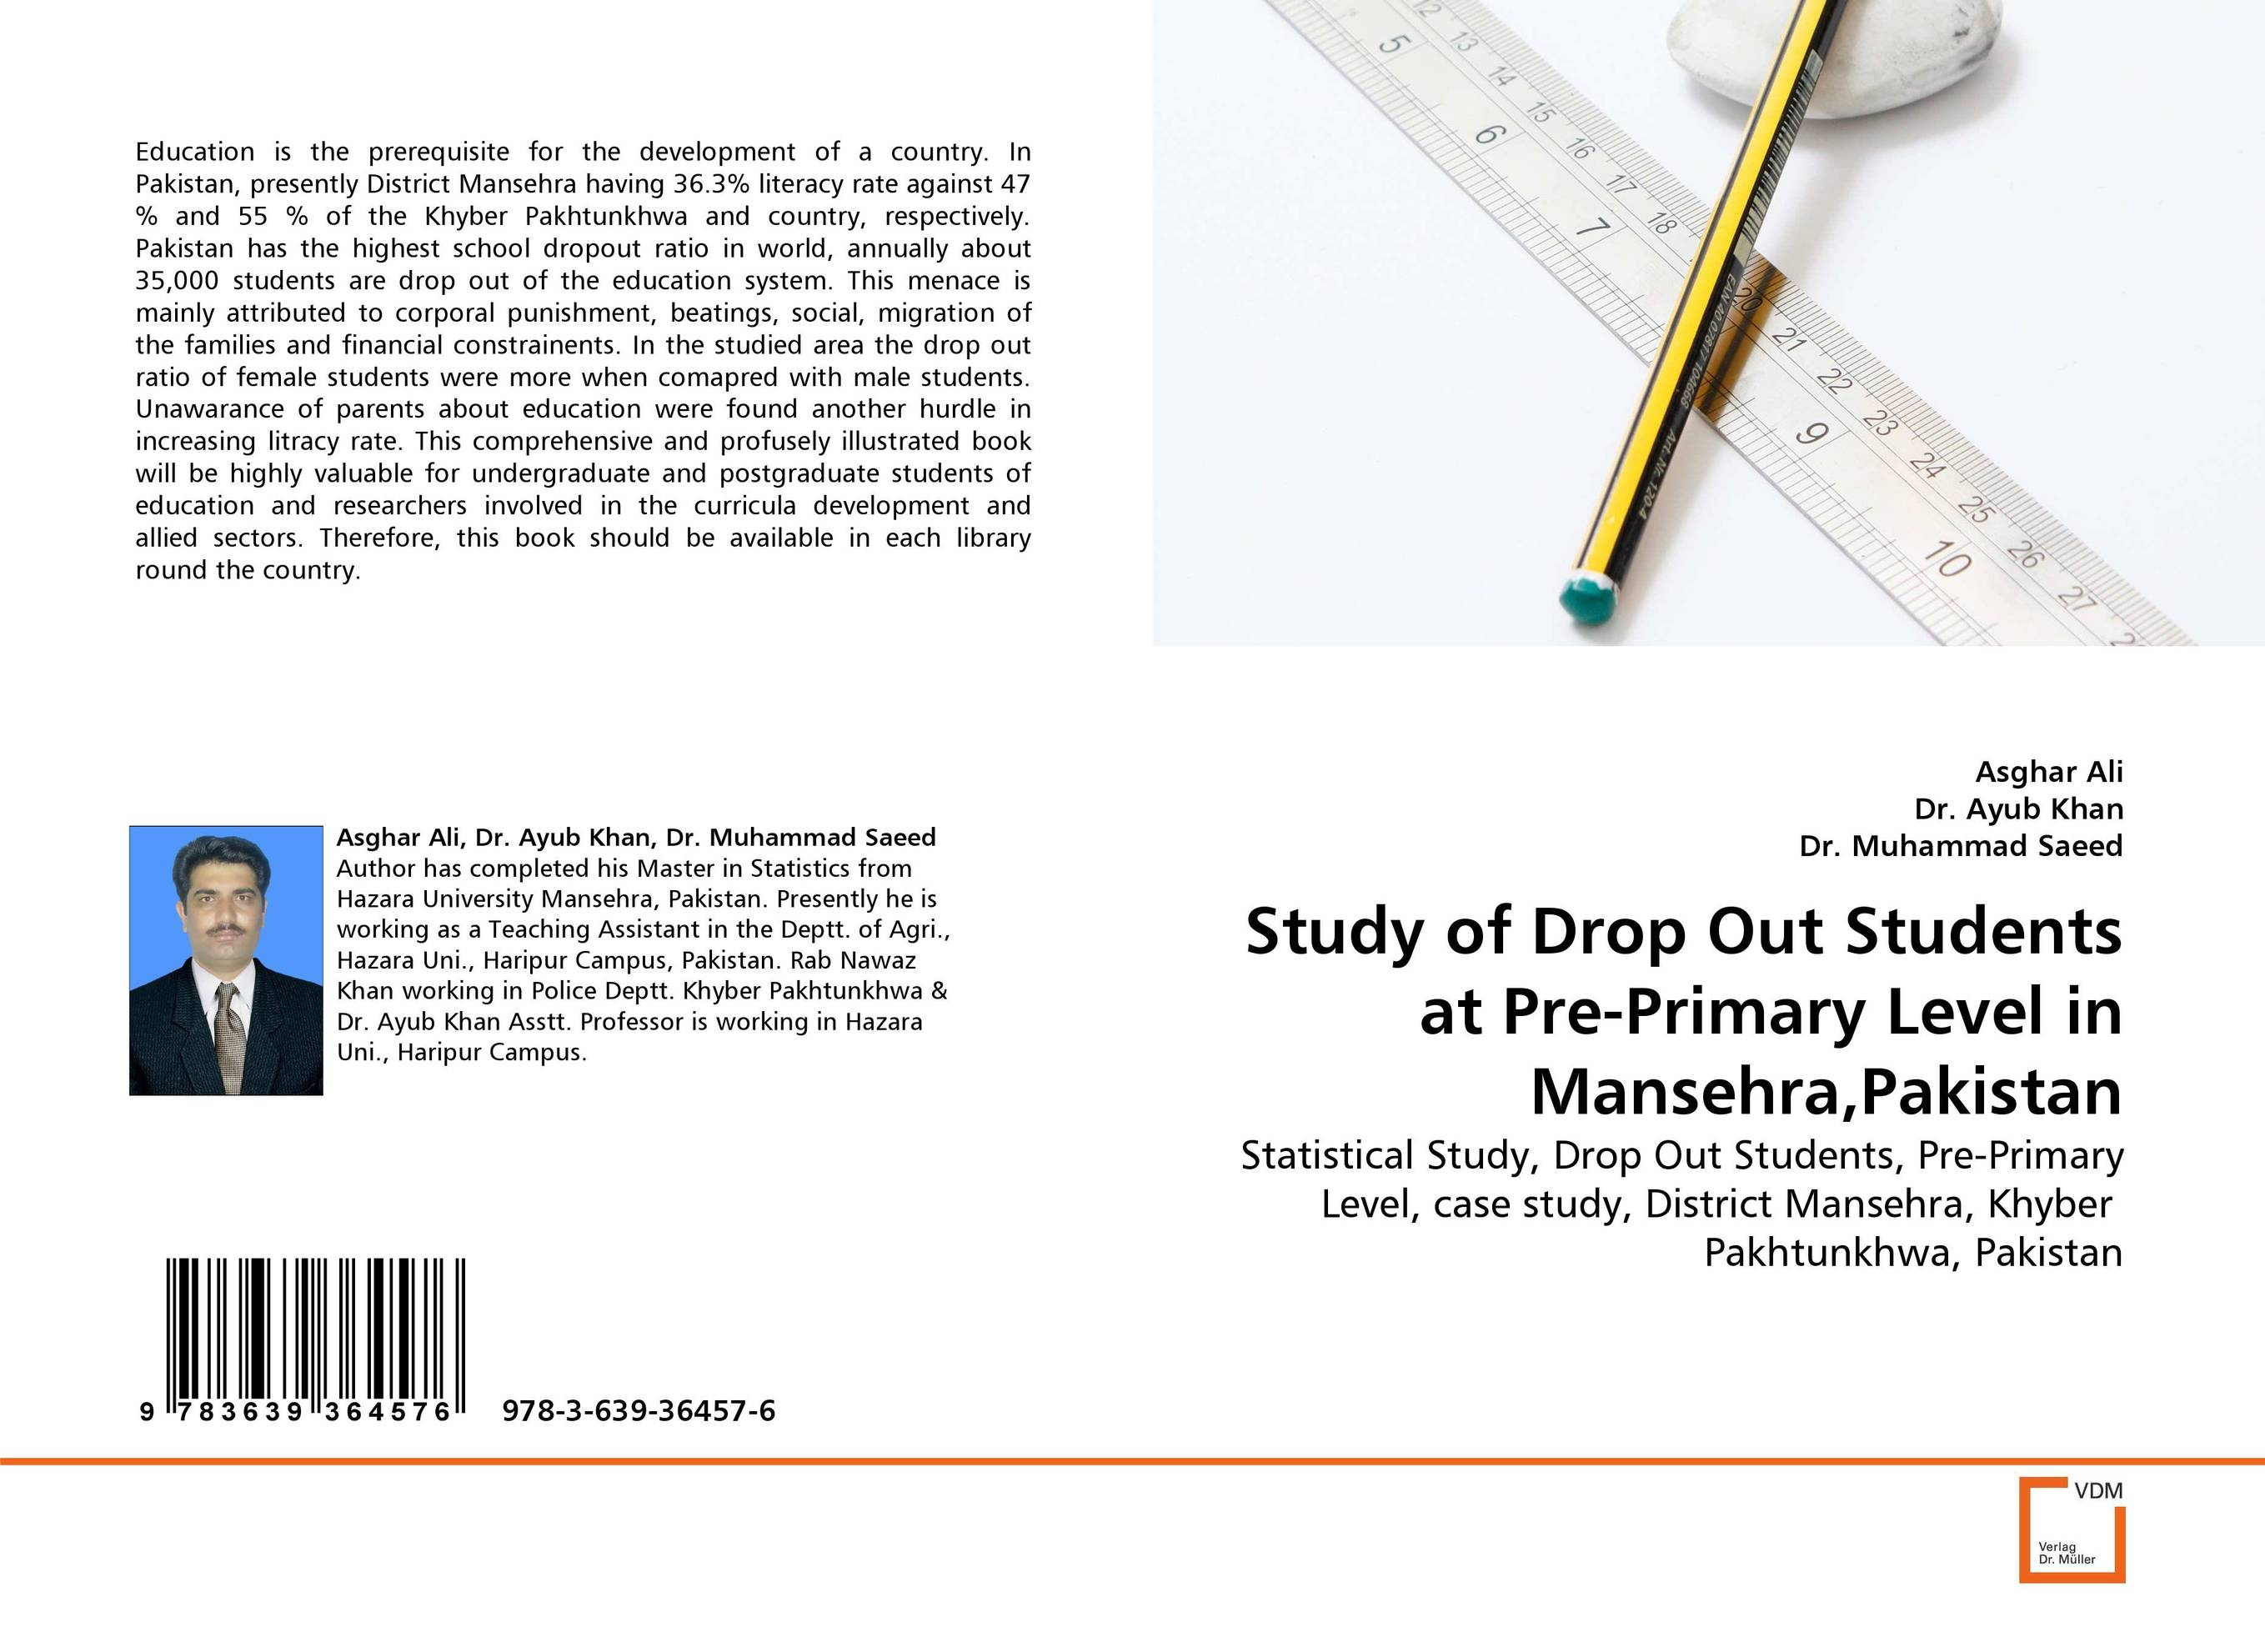 Study of Drop Out Students at Pre-Primary Level in Mansehra,Pakistan pakistan on the brink the future of pakistan afghanistan and the west